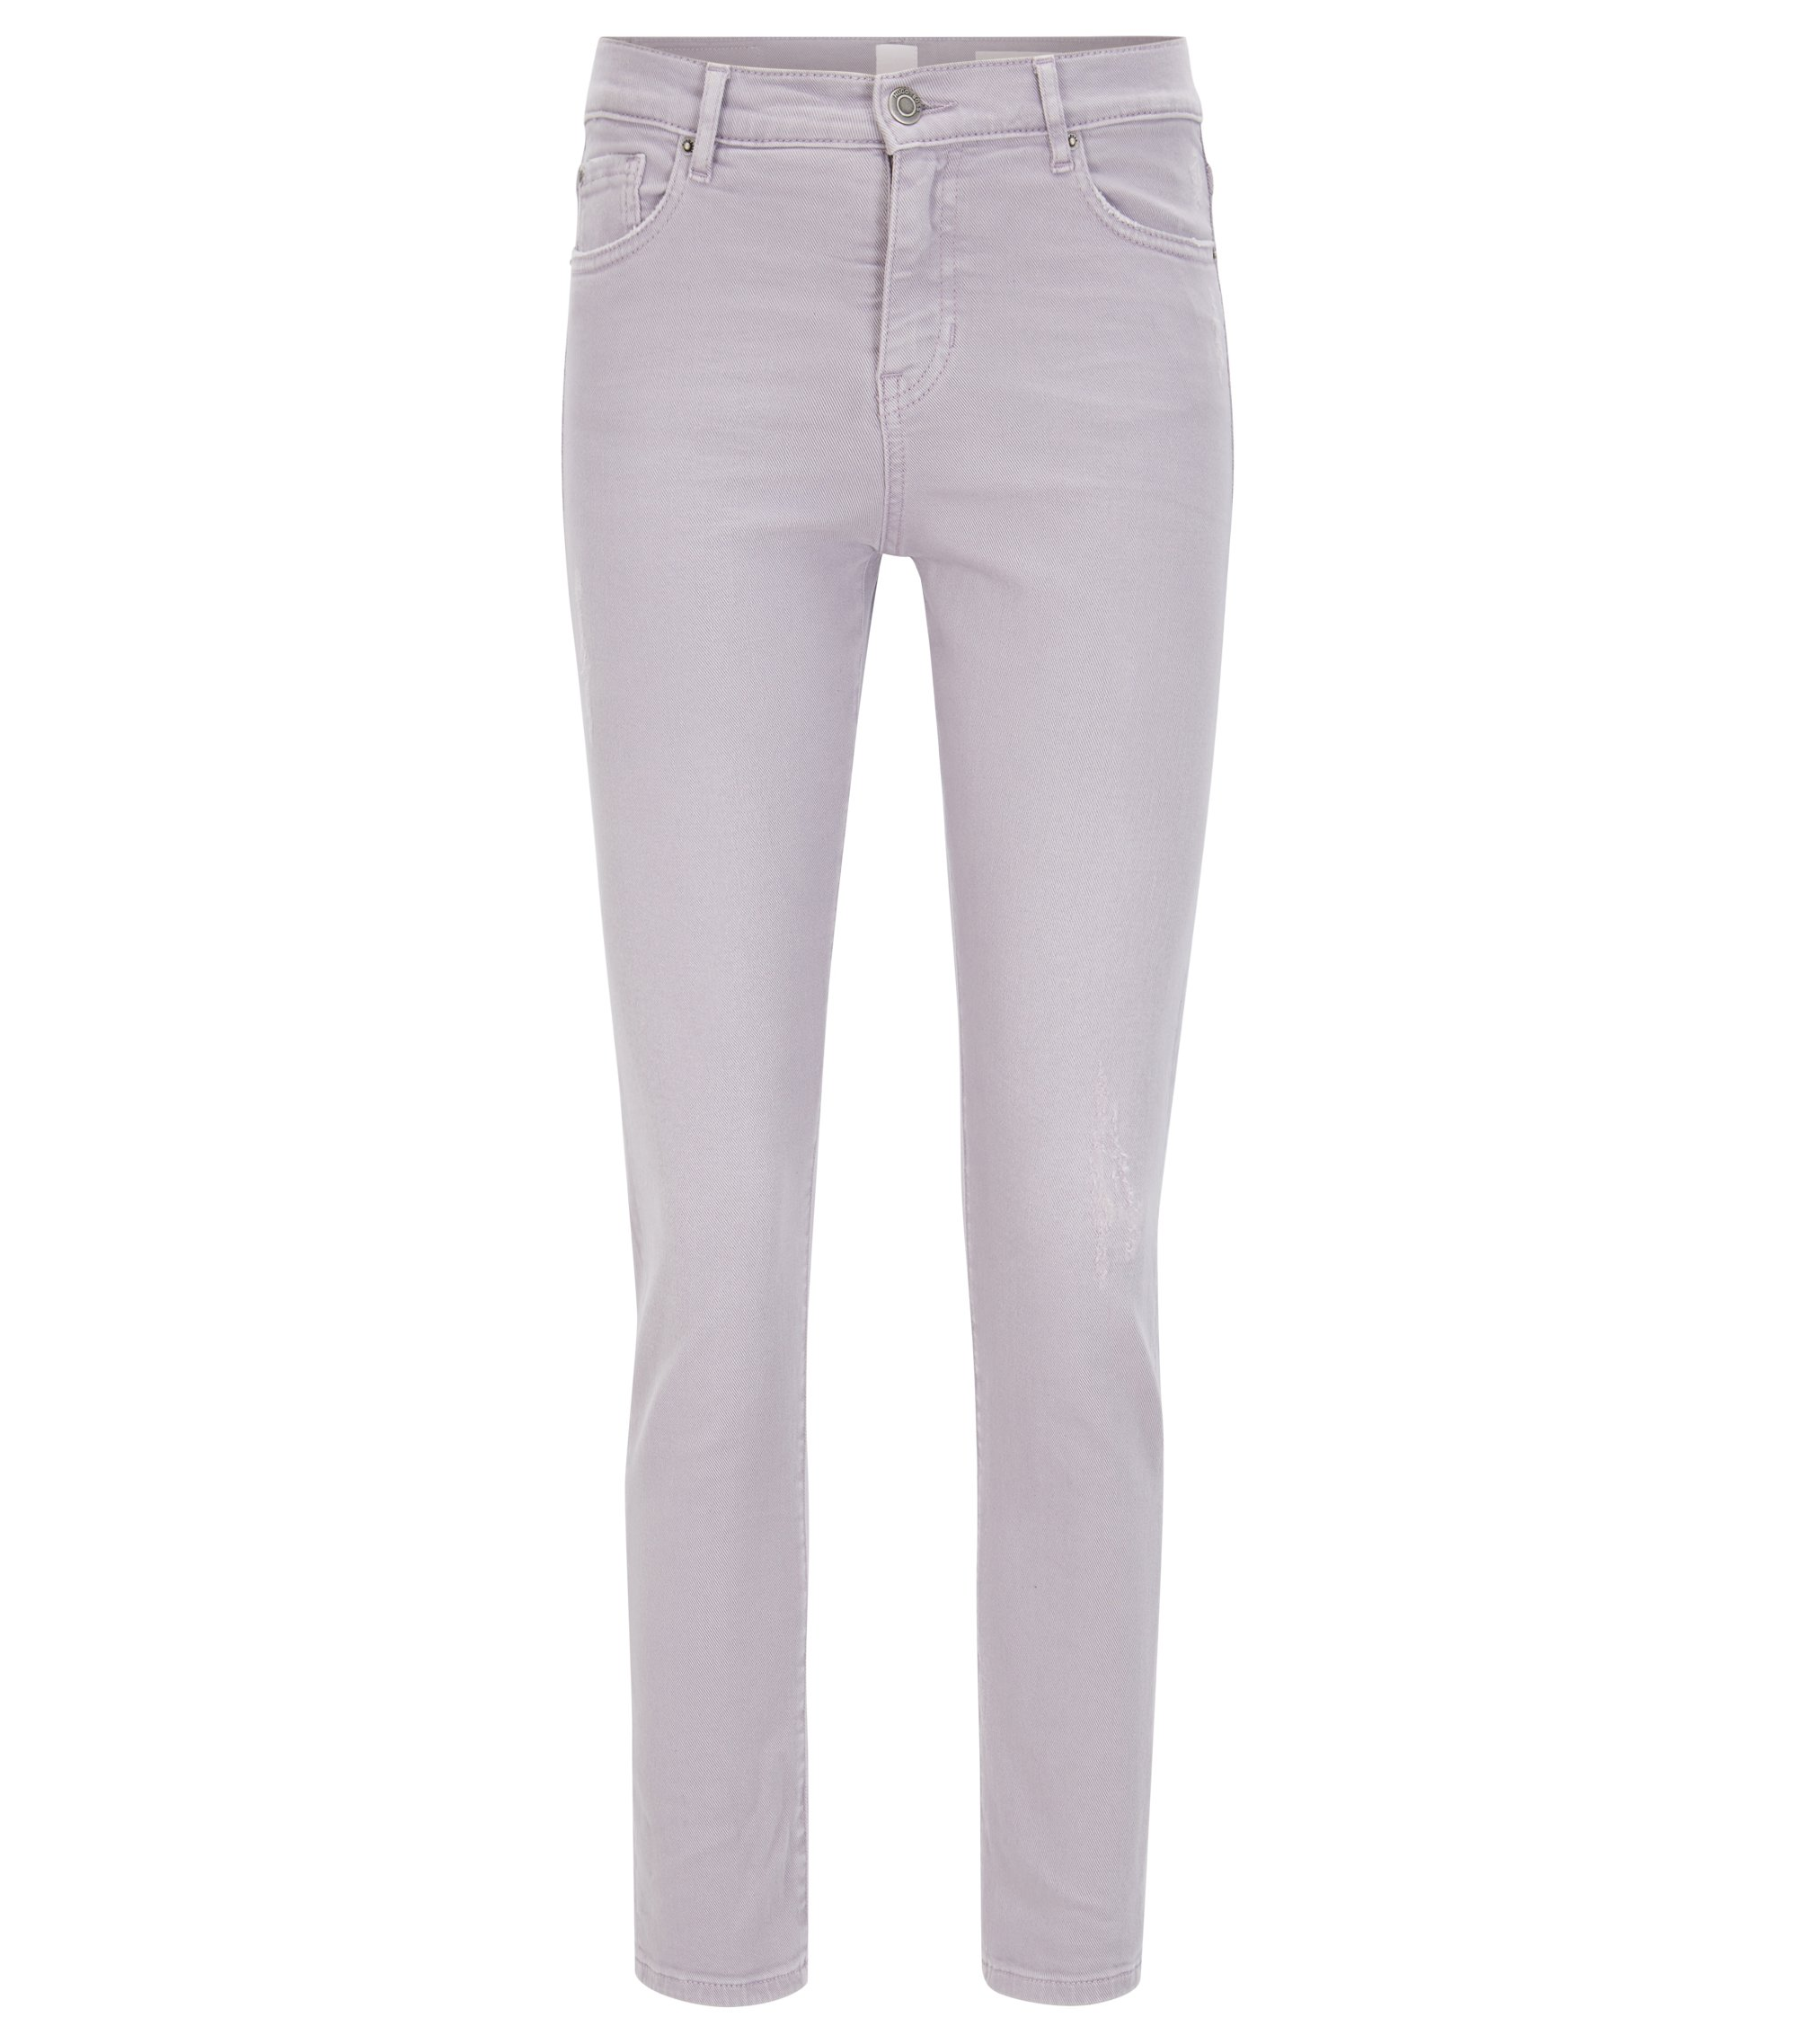 Jeans Slim Fit en denim stretch tissé, Lilas